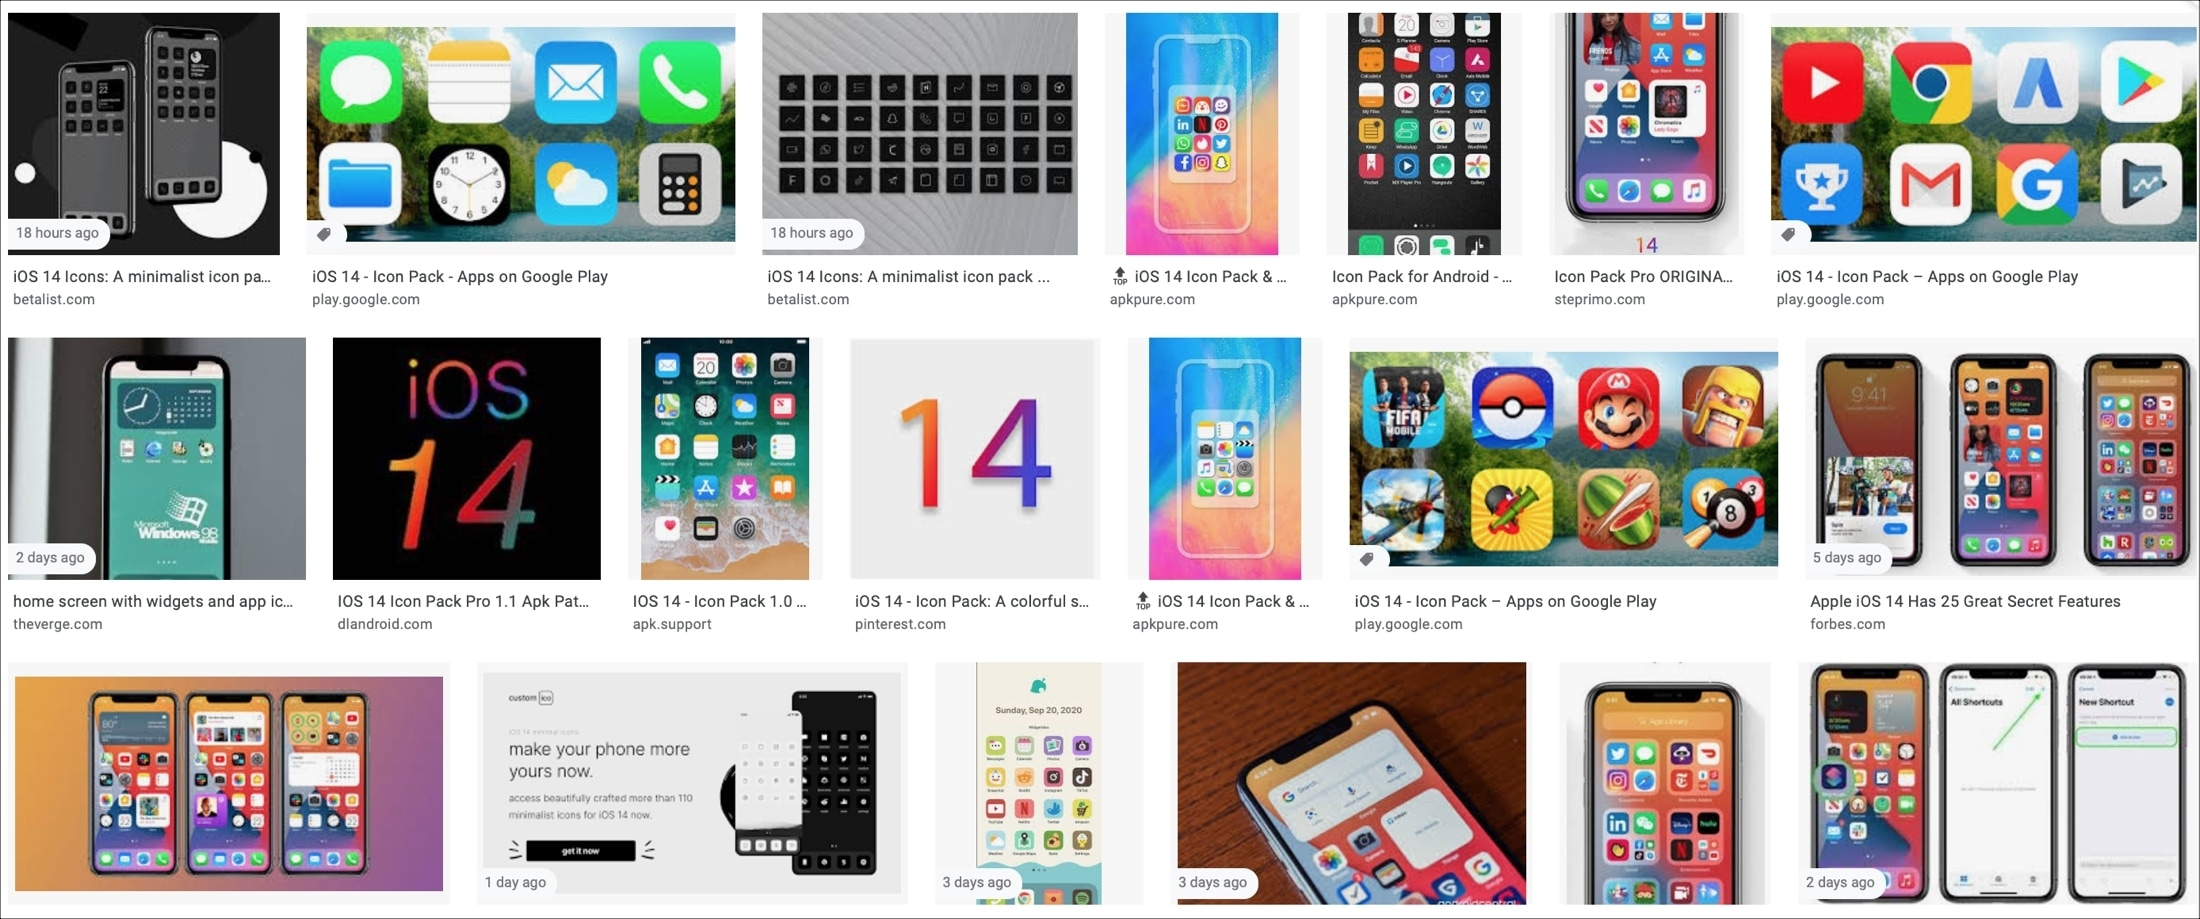 Google Images iOS 14 icon packs and ideas